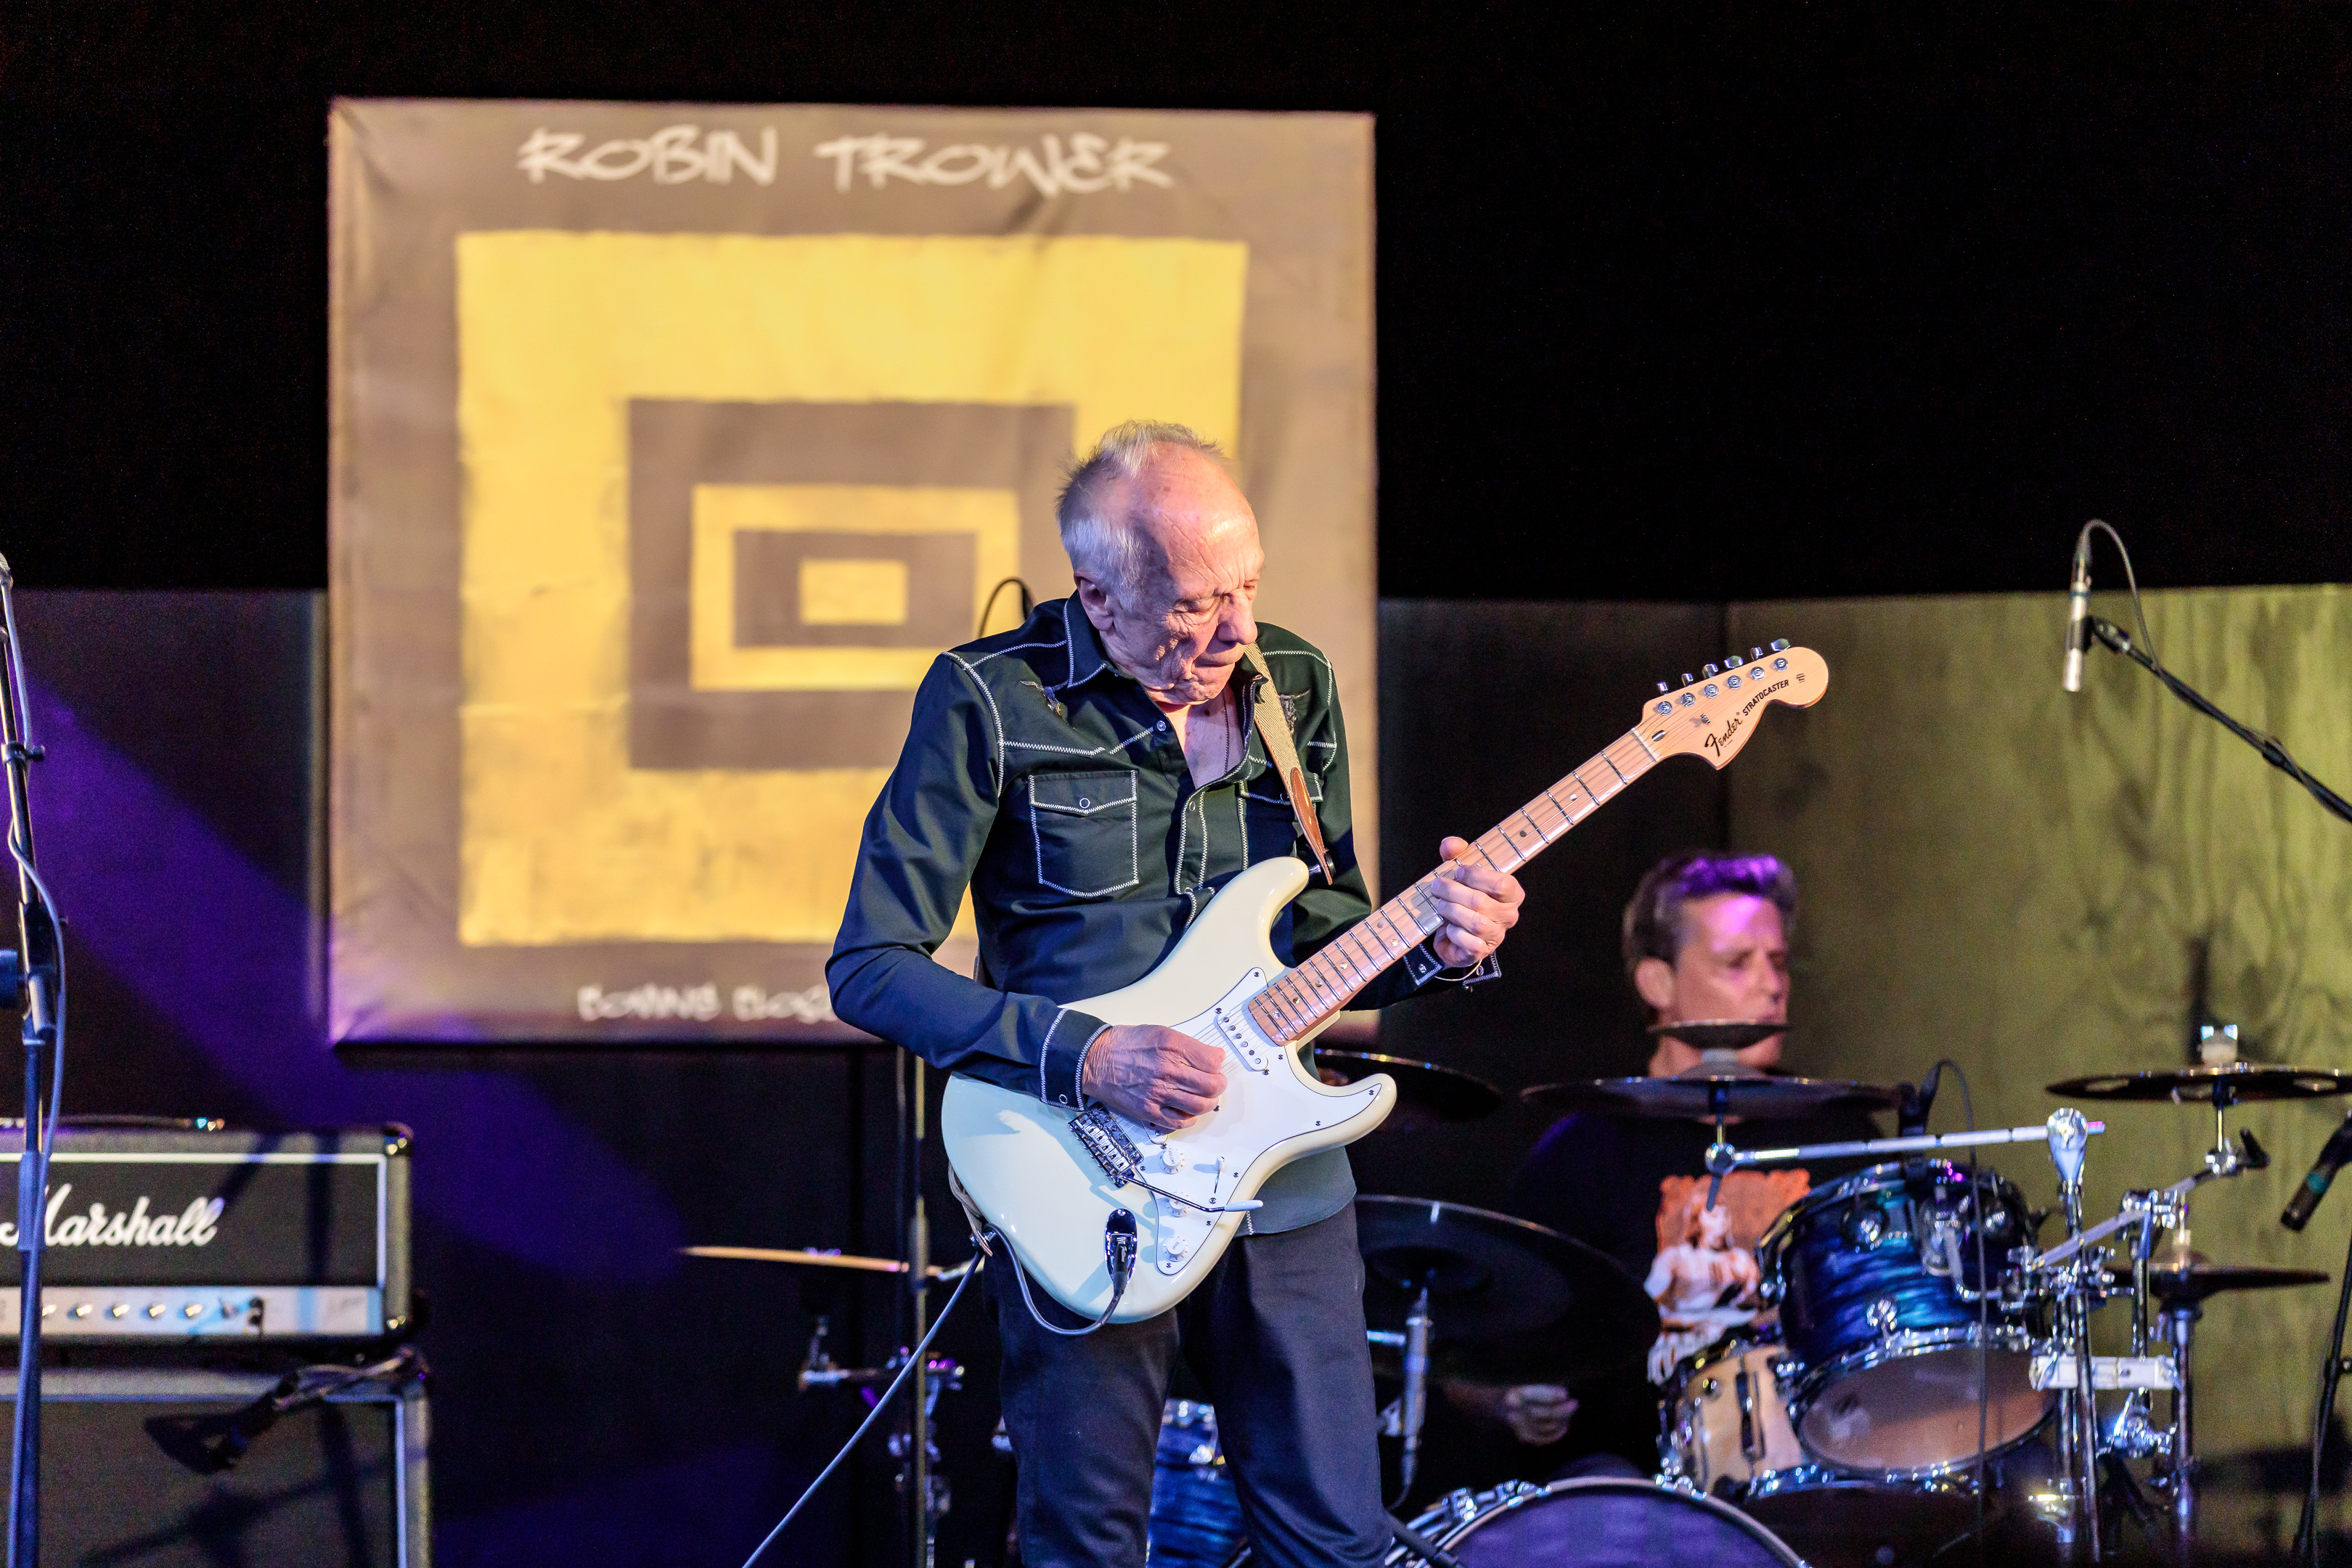 Axe Man Extraordinaire Robin Trower Delights Fans At Celebrity